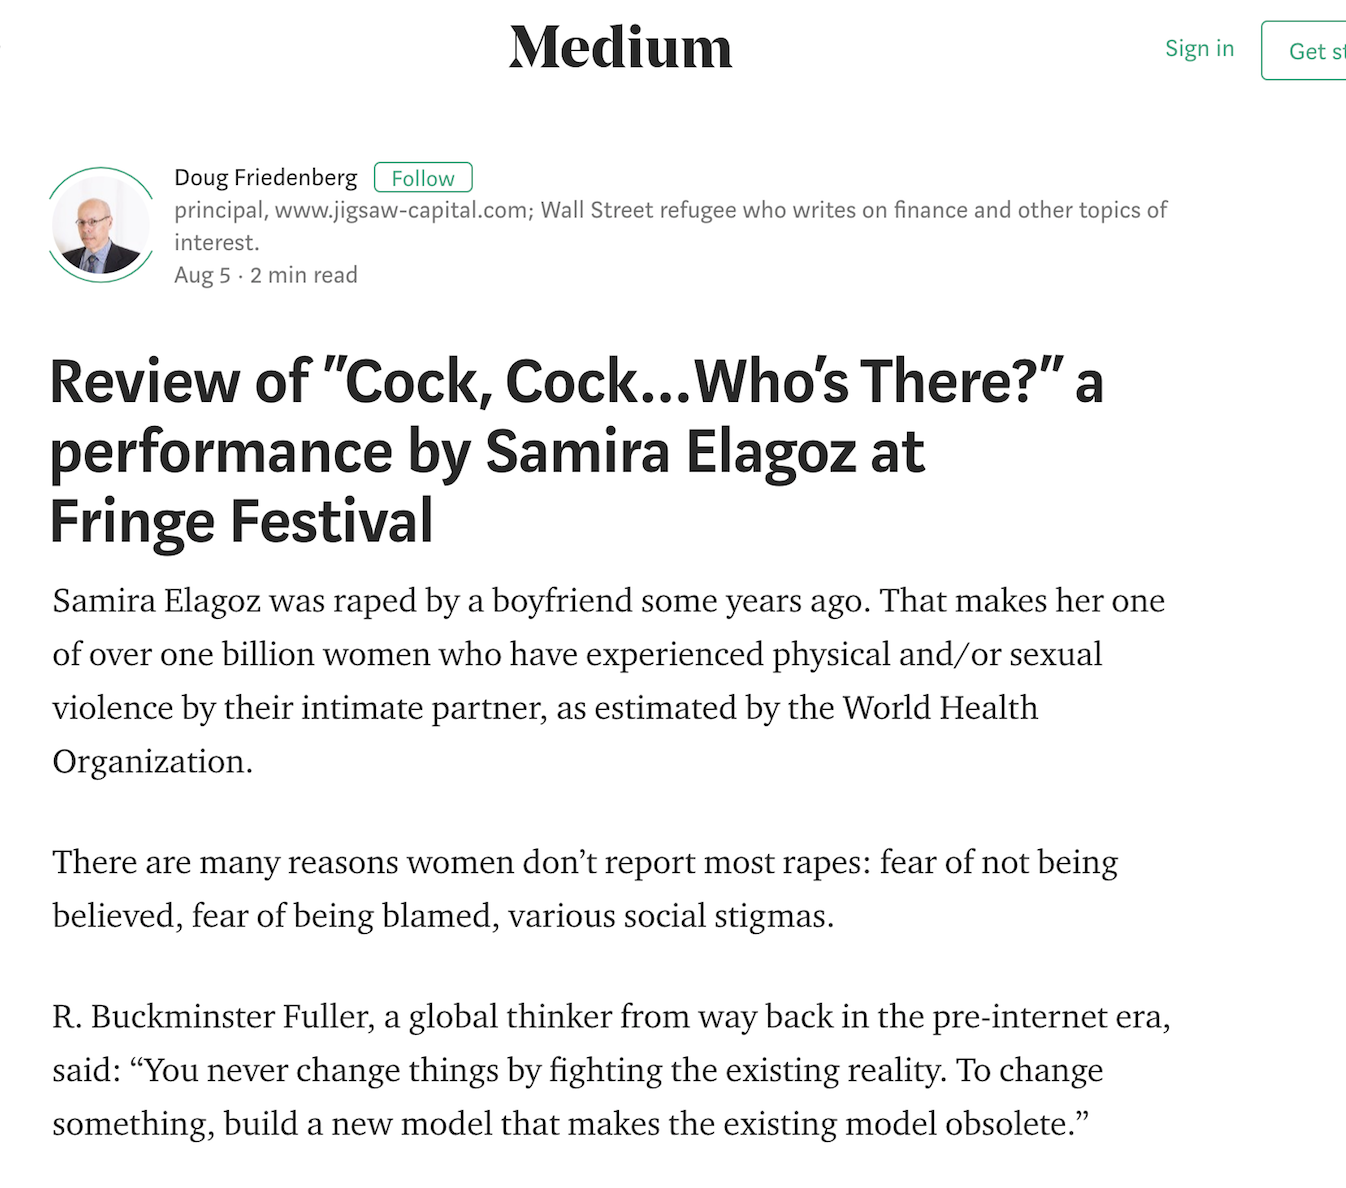 """MEDIUM     Review: """" R. Buckminster Fuller, a global thinker from way back in the pre-internet era, said: """"You never change things by fighting the existing reality. To change something, build a new model that makes the existing model obsolete.""""And that is what Ms. Elagoz has done in """"Cock, Cock…Who's There?"""""""